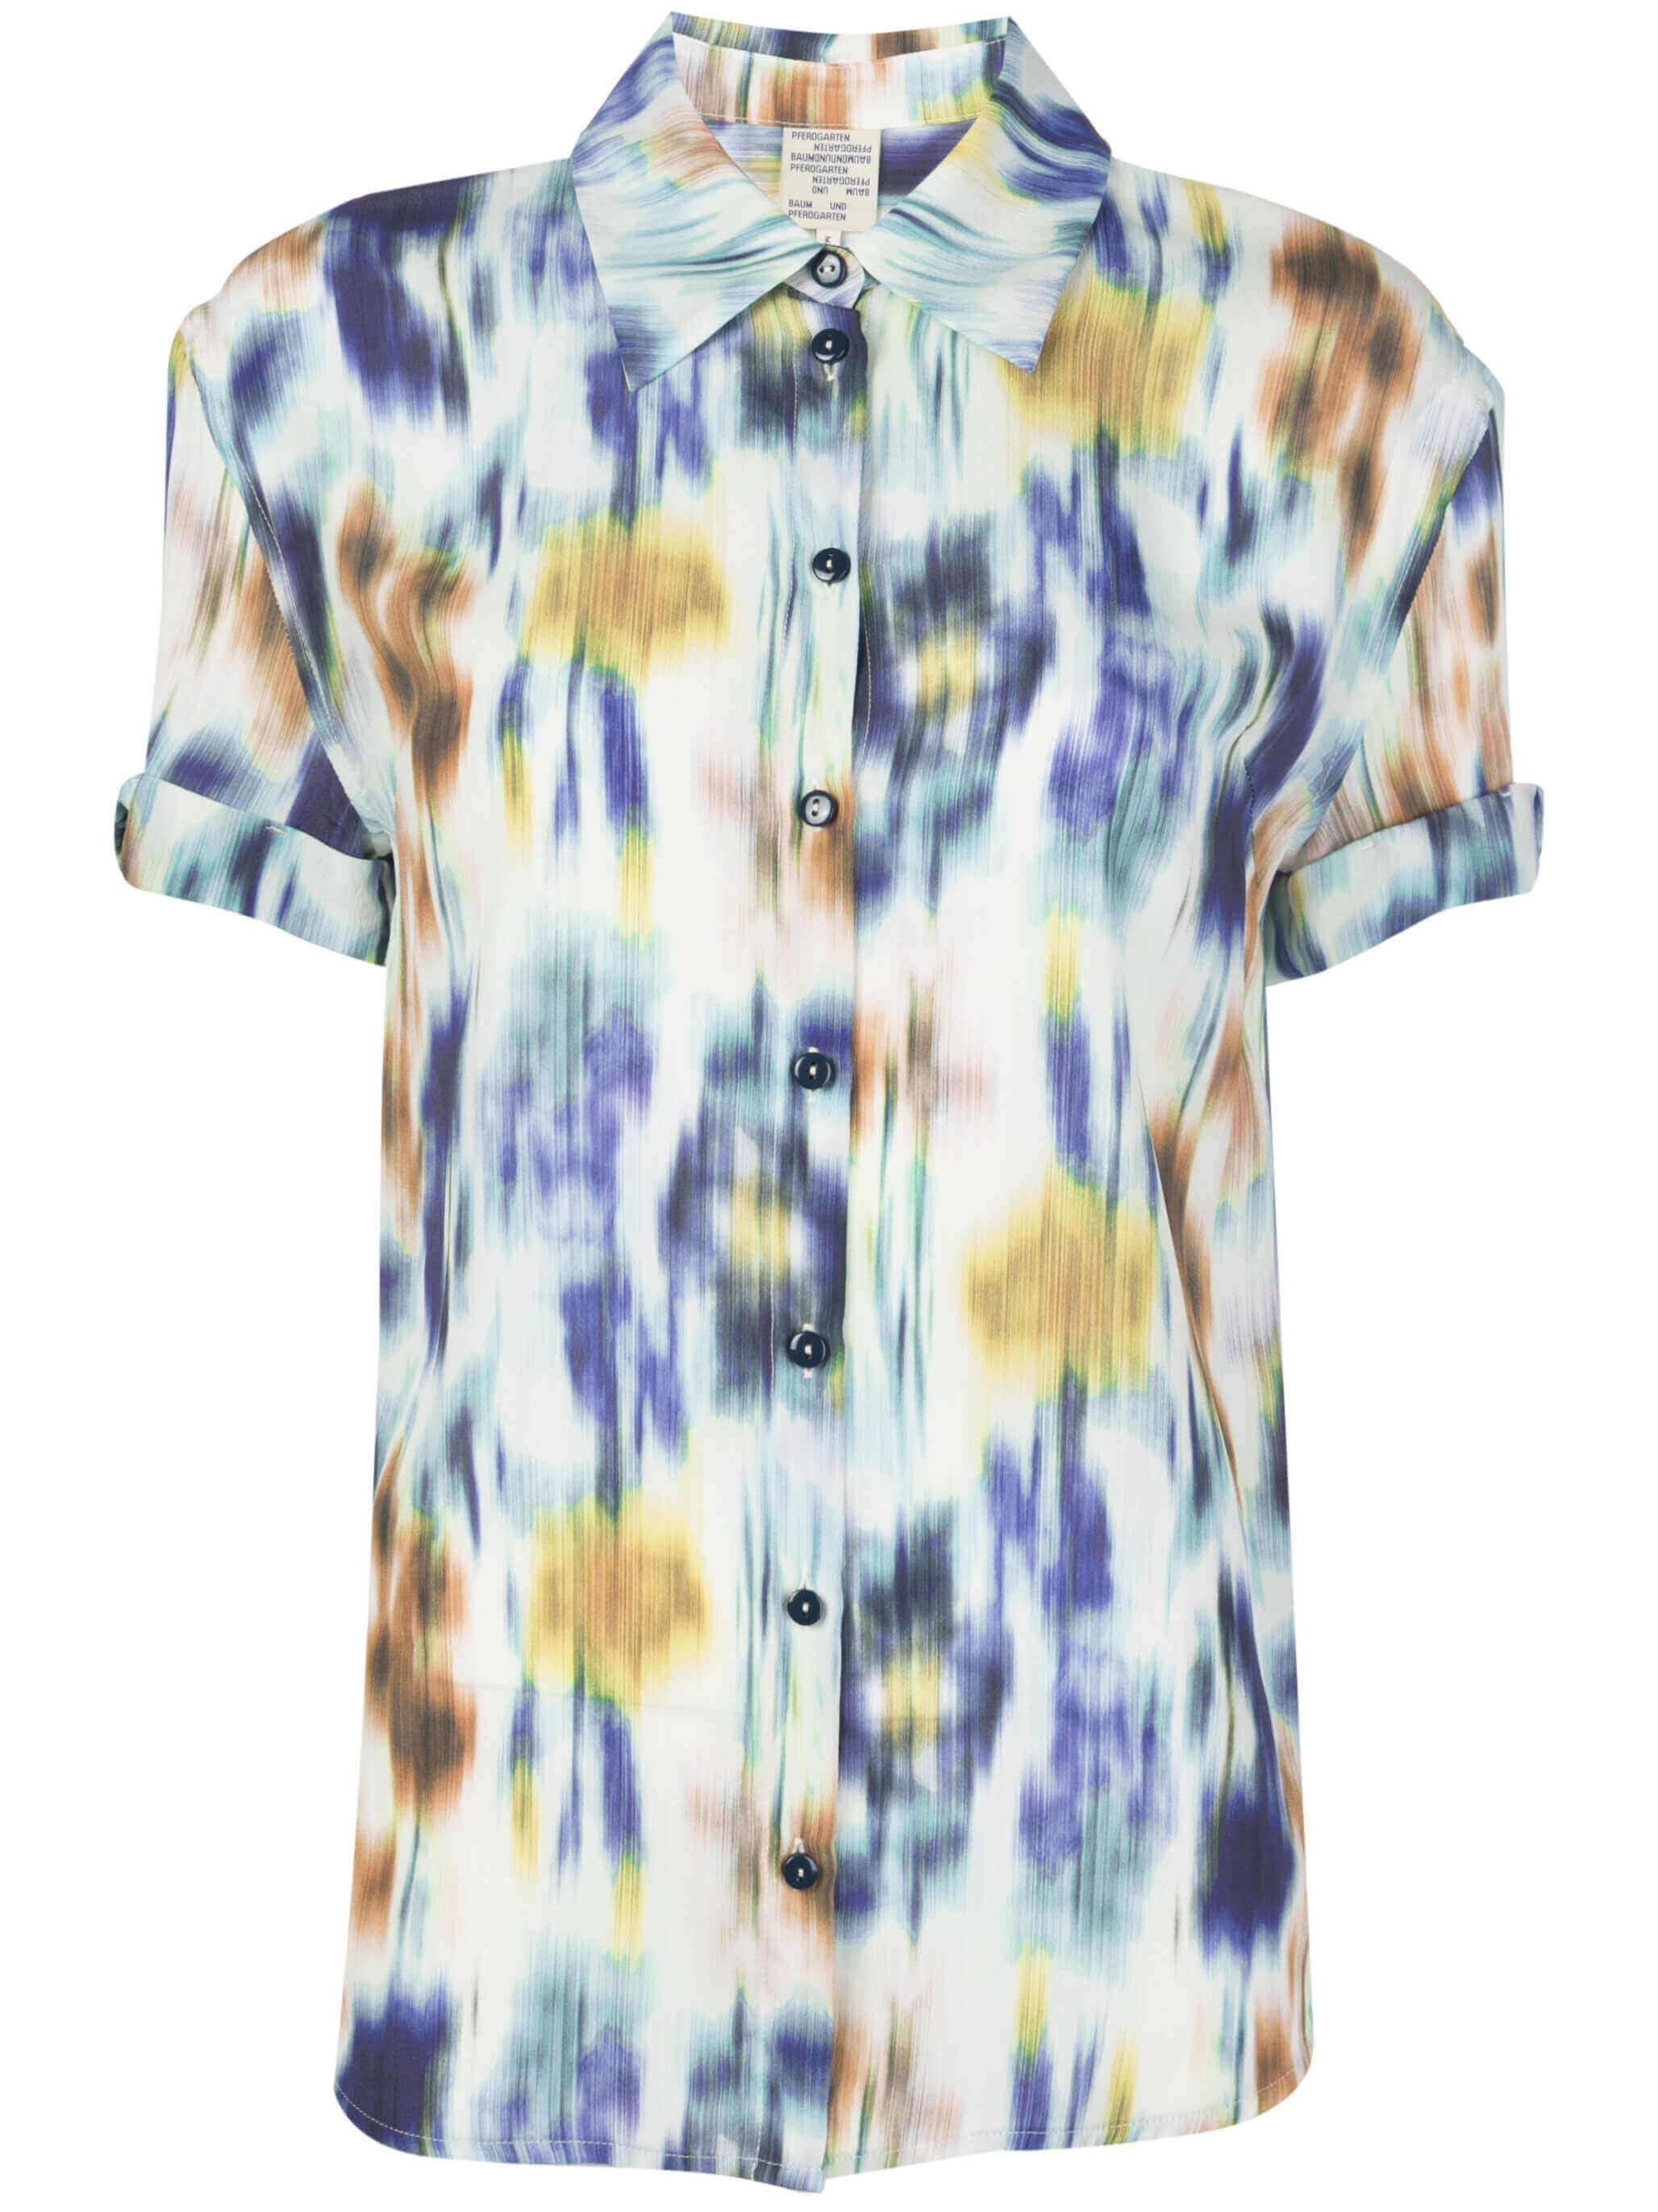 Moanna Floral Print Short Sleeve Top